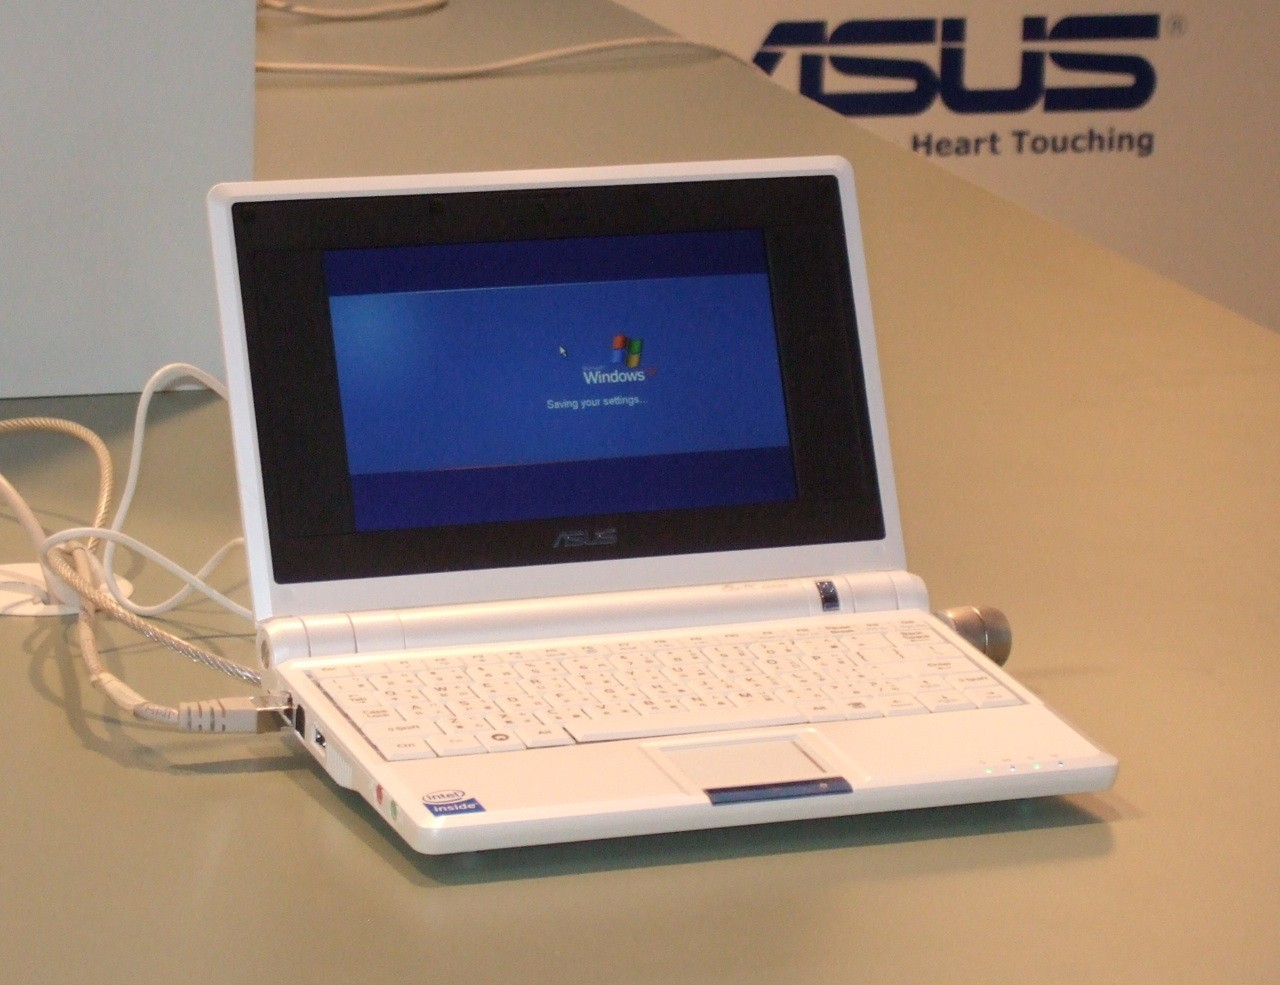 Eee-PC mit Windows XP und UMTS (Update) - Eee-PC mit Windows XP